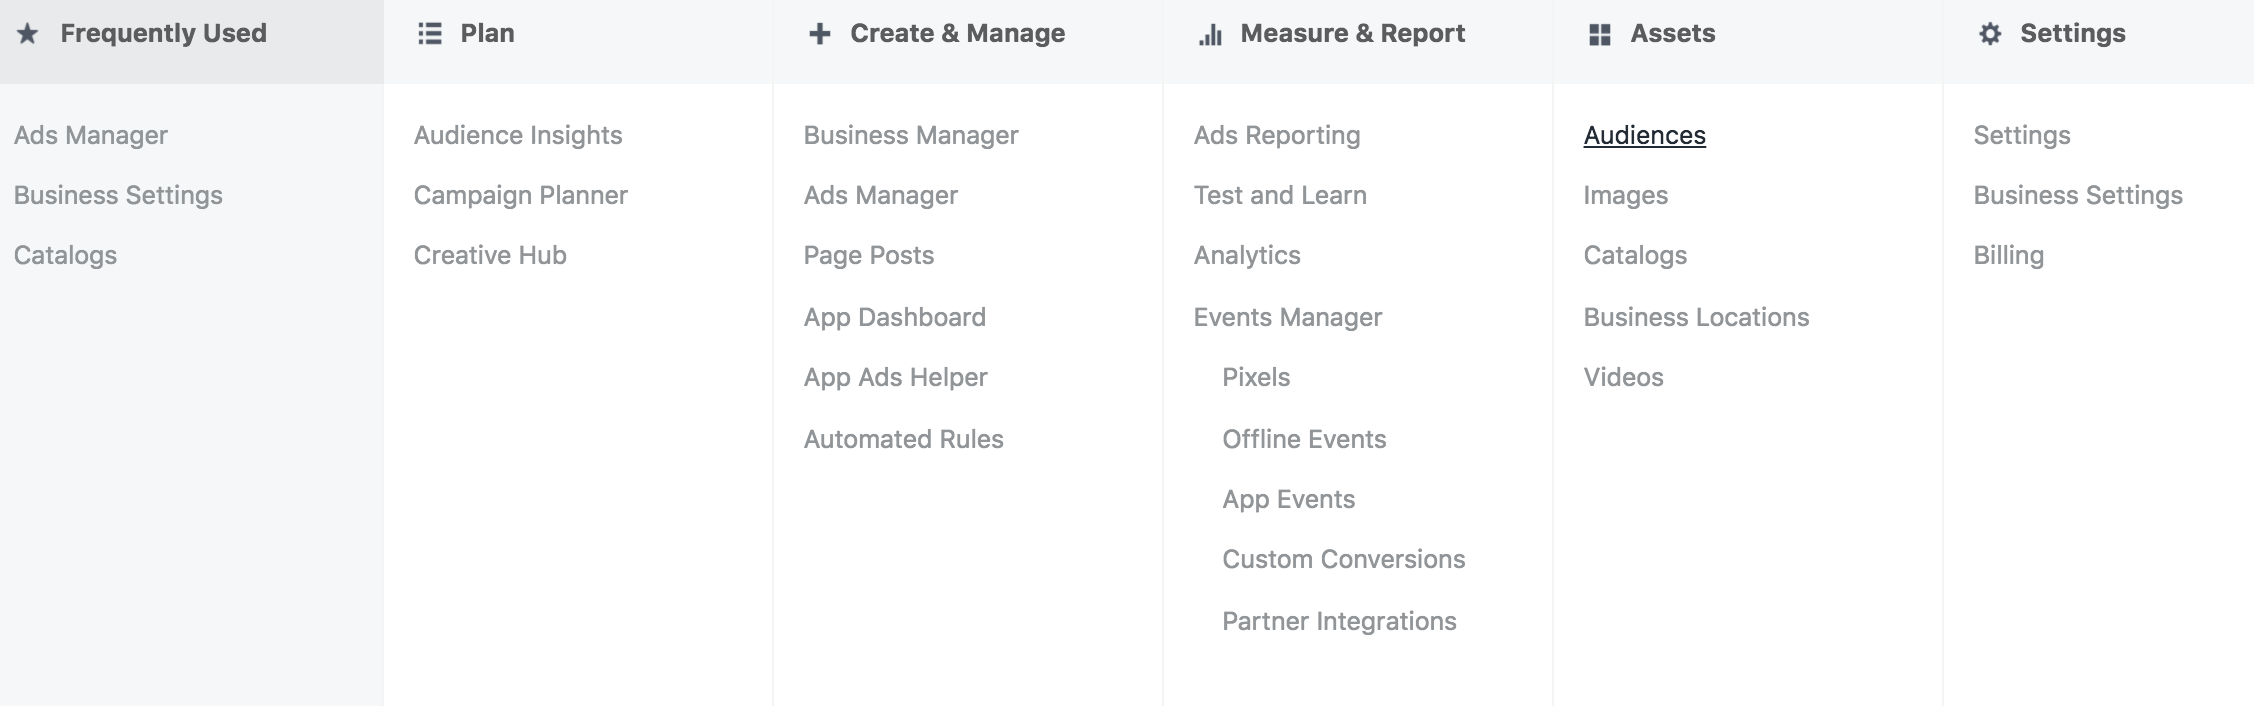 business manager dropdown - Facebook voegt Life Time Value toe aan customer match